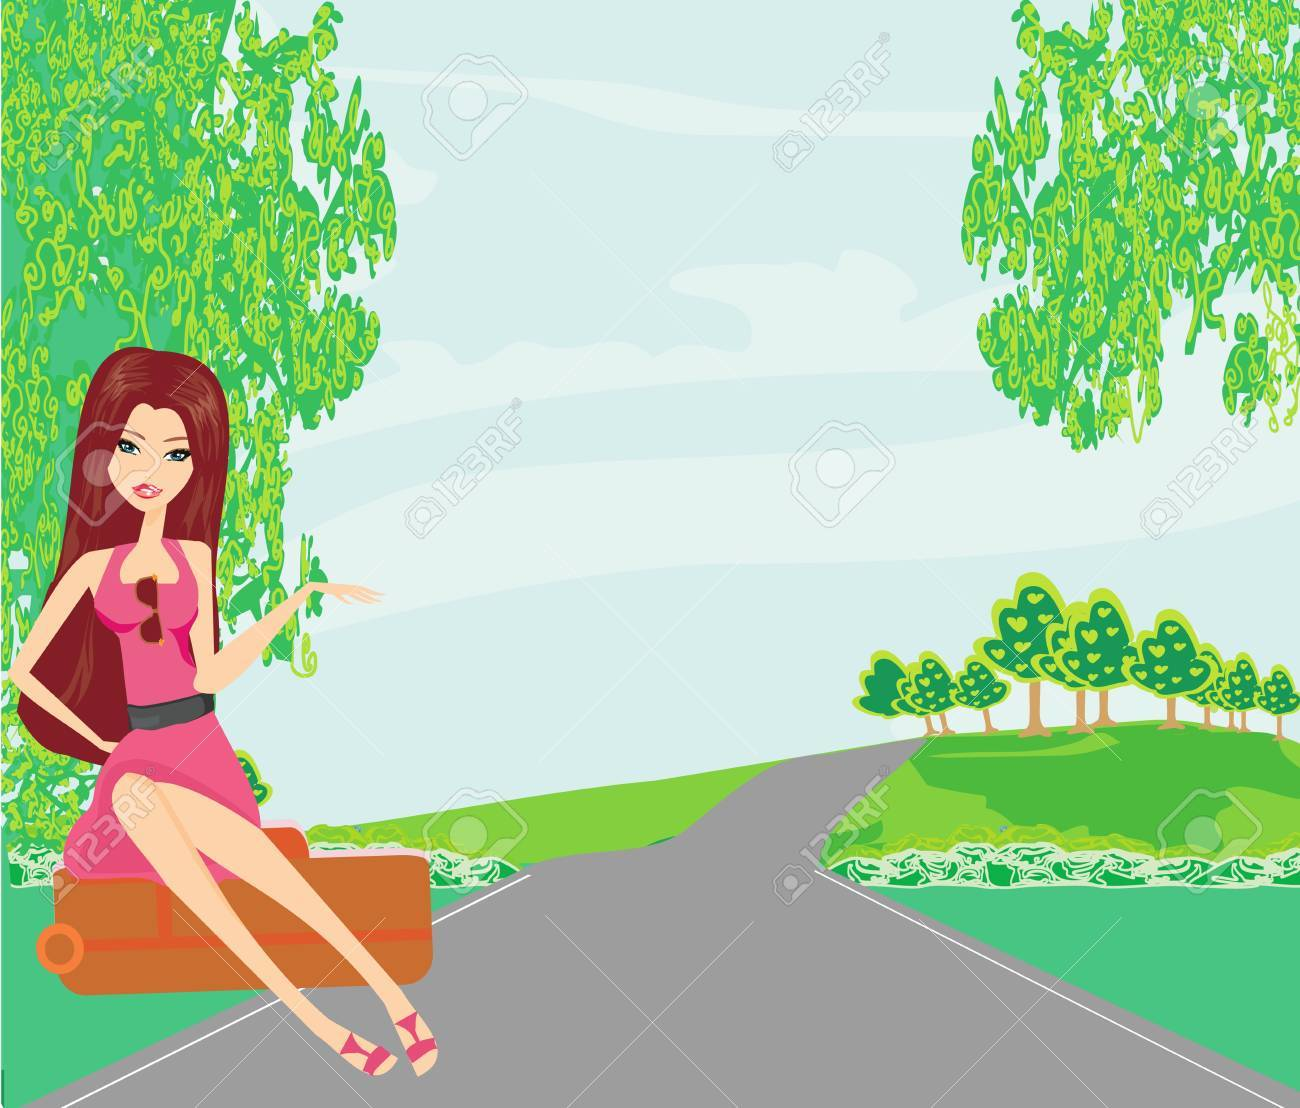 Pretty young woman hitchhiking along a road. Stock Vector - 18902756